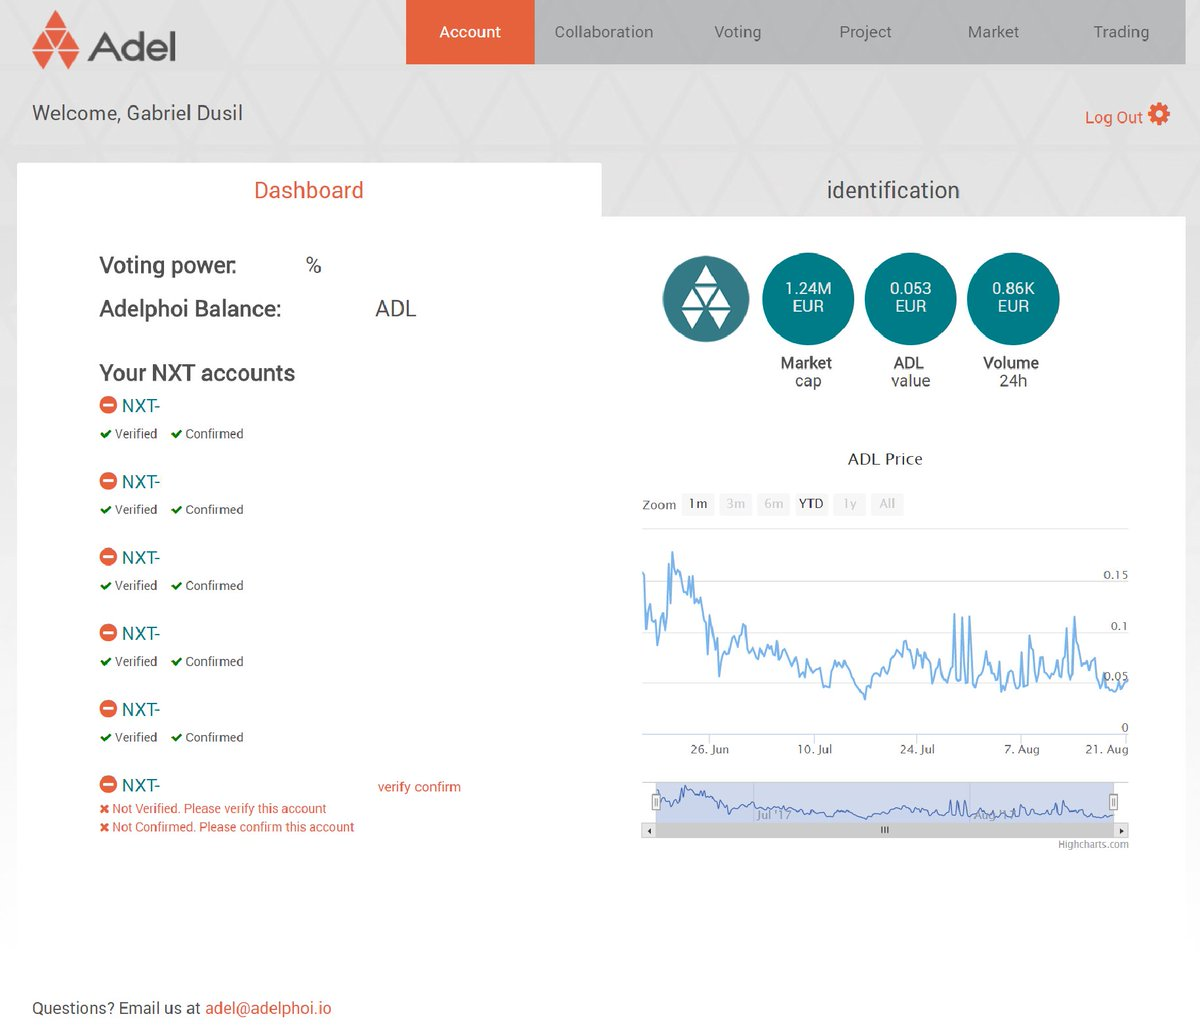 #Adel announces new Account Module for #Idea #Incubation #I2P2E2 #Startup #Incubator #Accelerator  #Trading Register at adelphoi.io<br>http://pic.twitter.com/6HgXxX2i5y